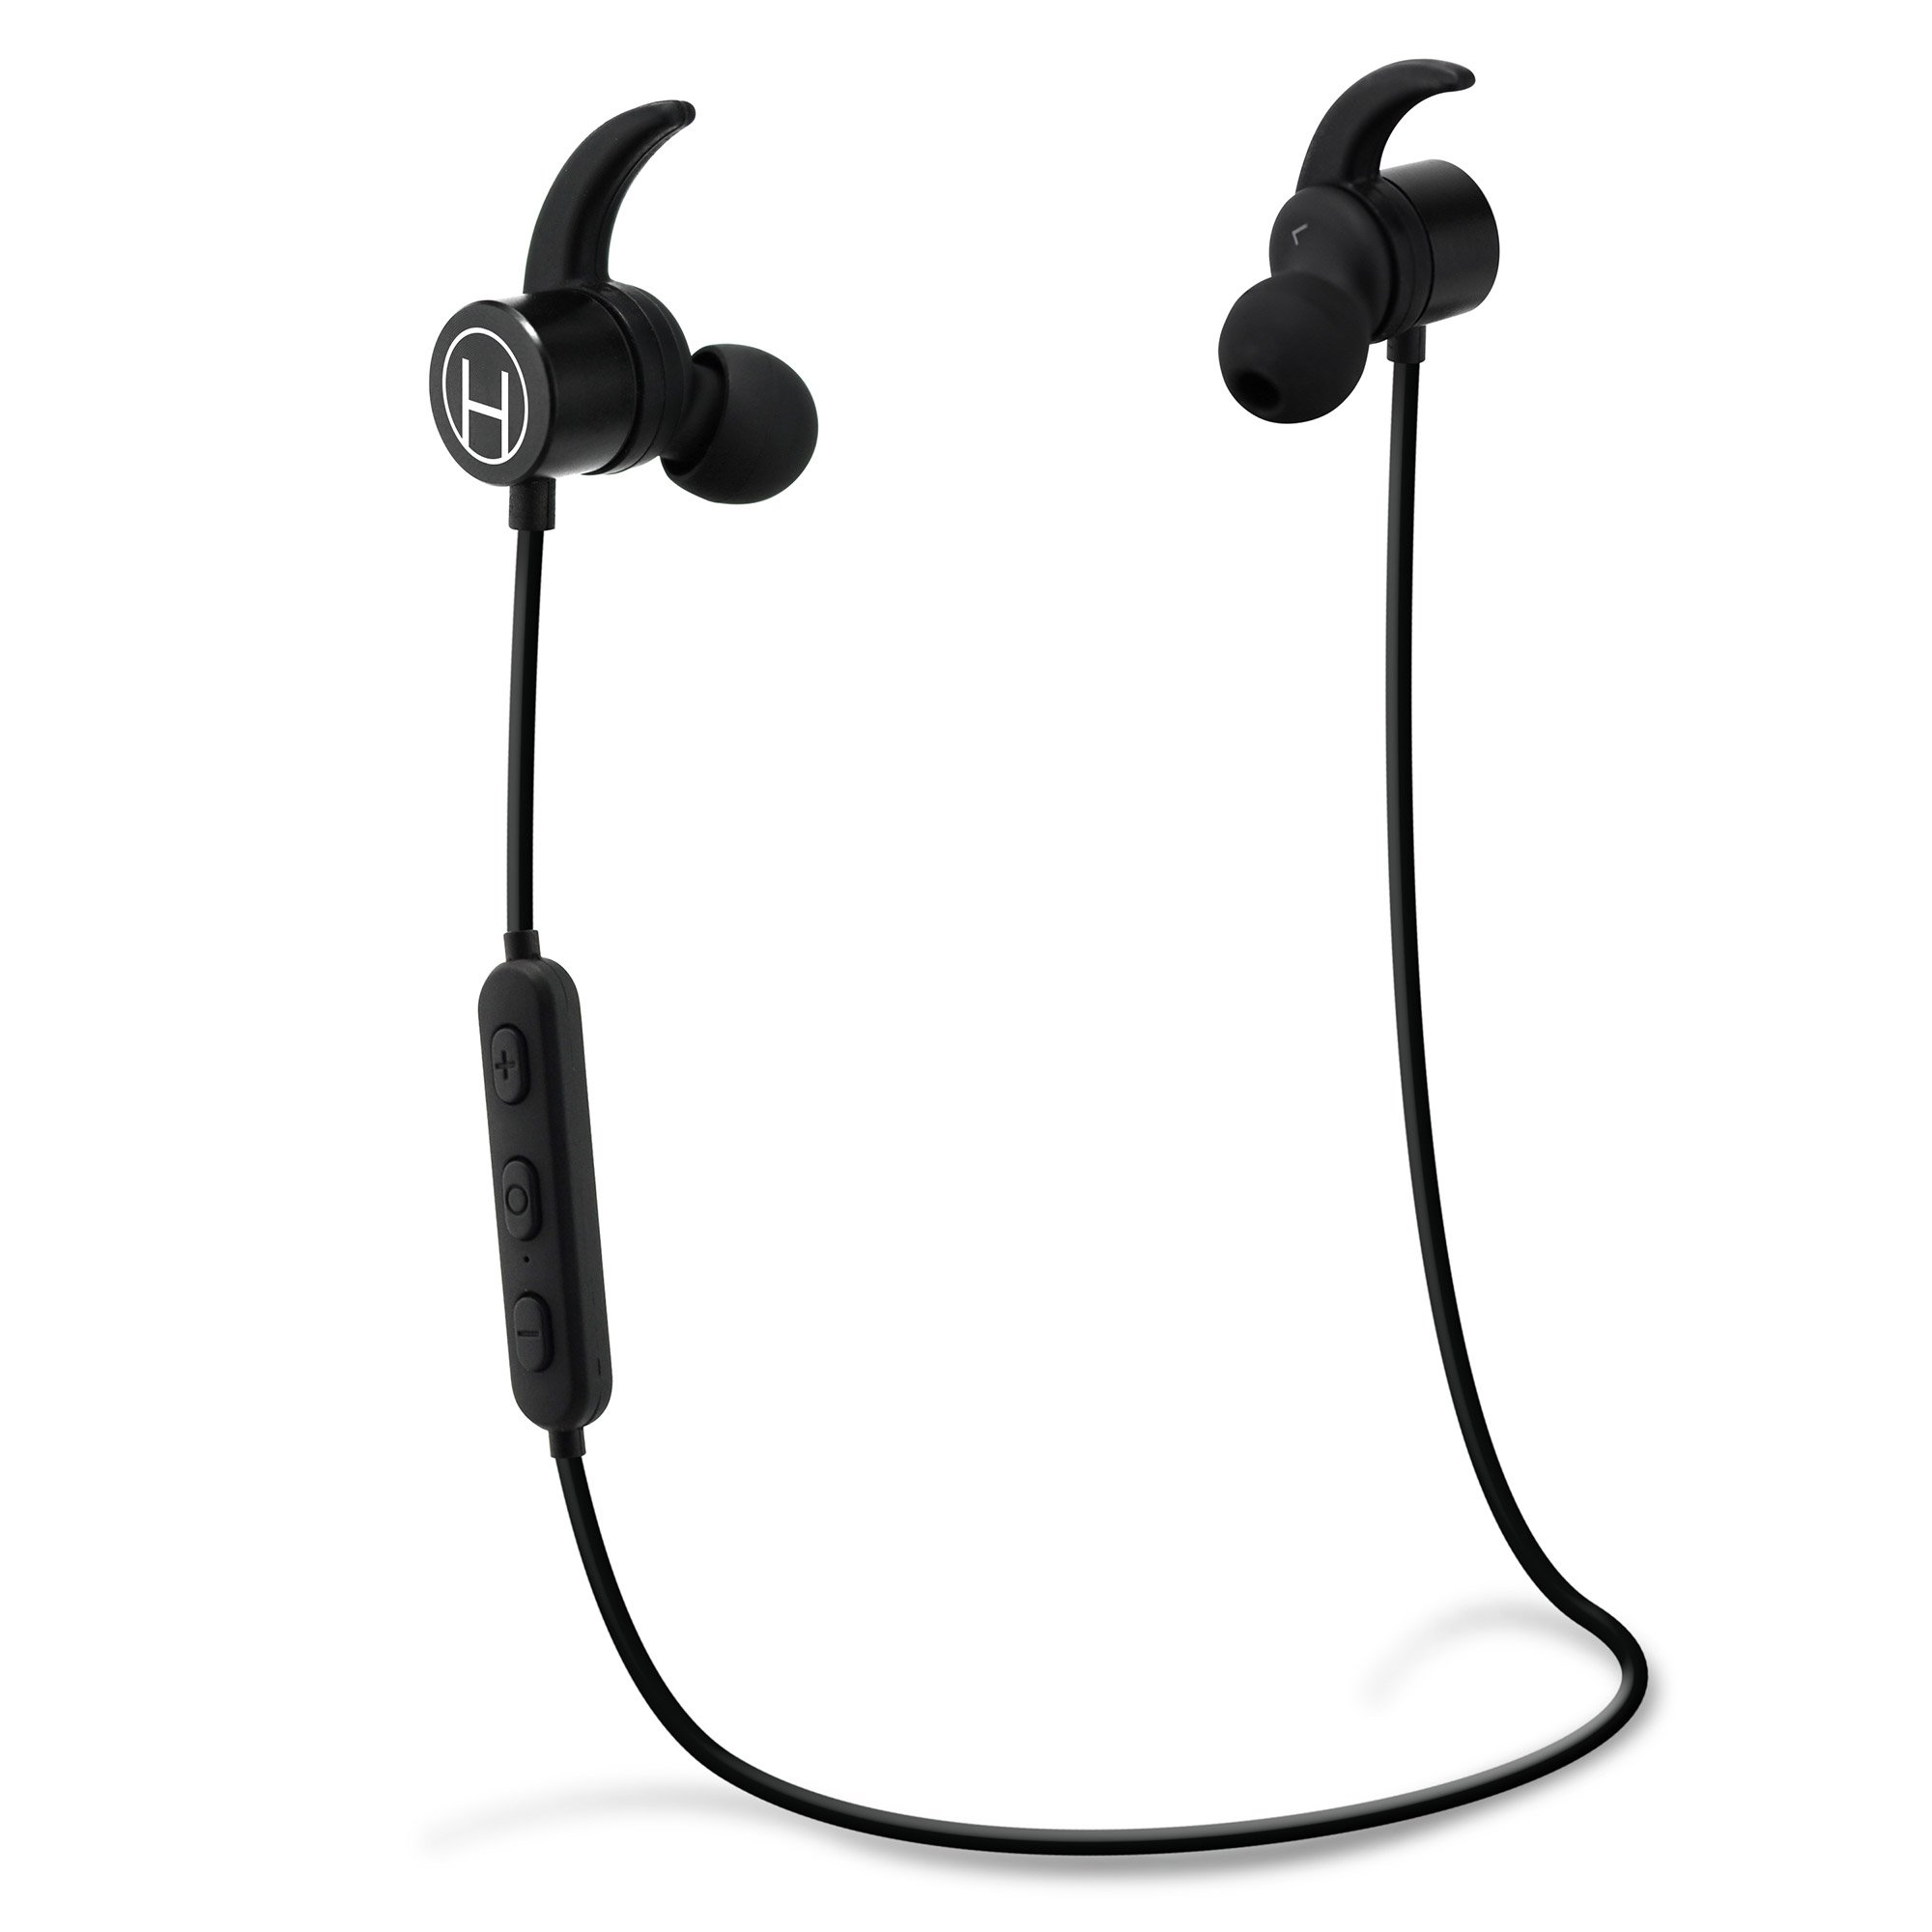 Bluetooth headphones for the Gym, In-The-Ear Headphones Bluetooth Headphones with Mic - Bluetooth Headset For Gym and Activities Noise Canceling by Hutchee